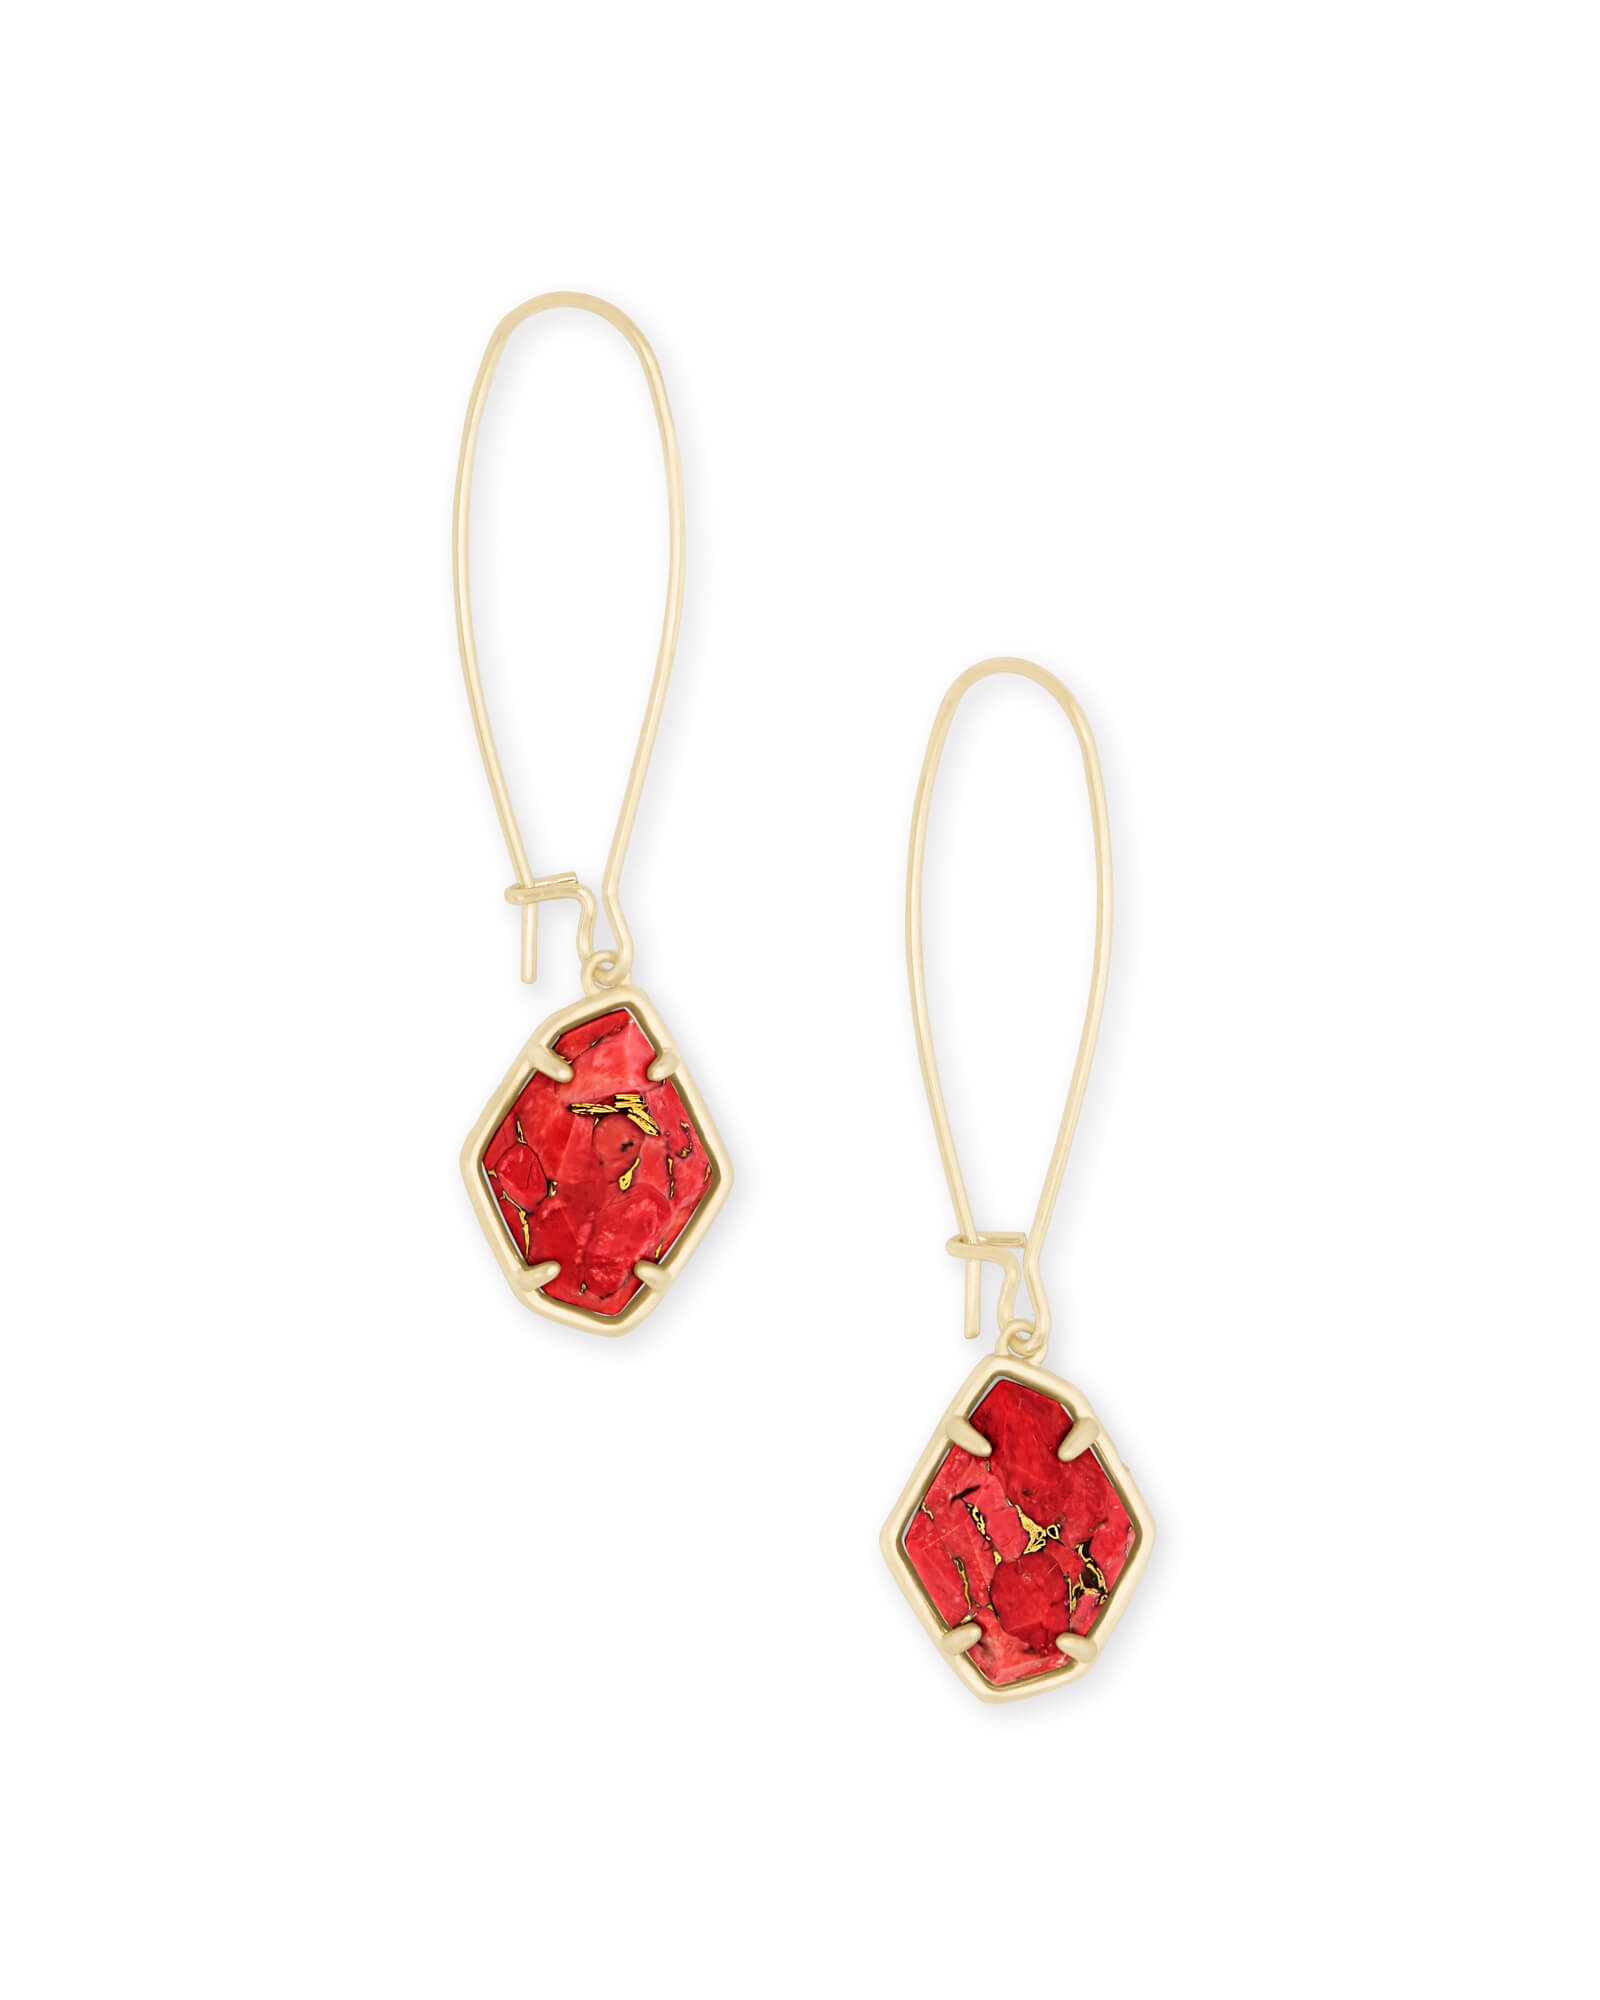 Ellington Gold Drop Earrings in Bronze Veined Red Magnesite